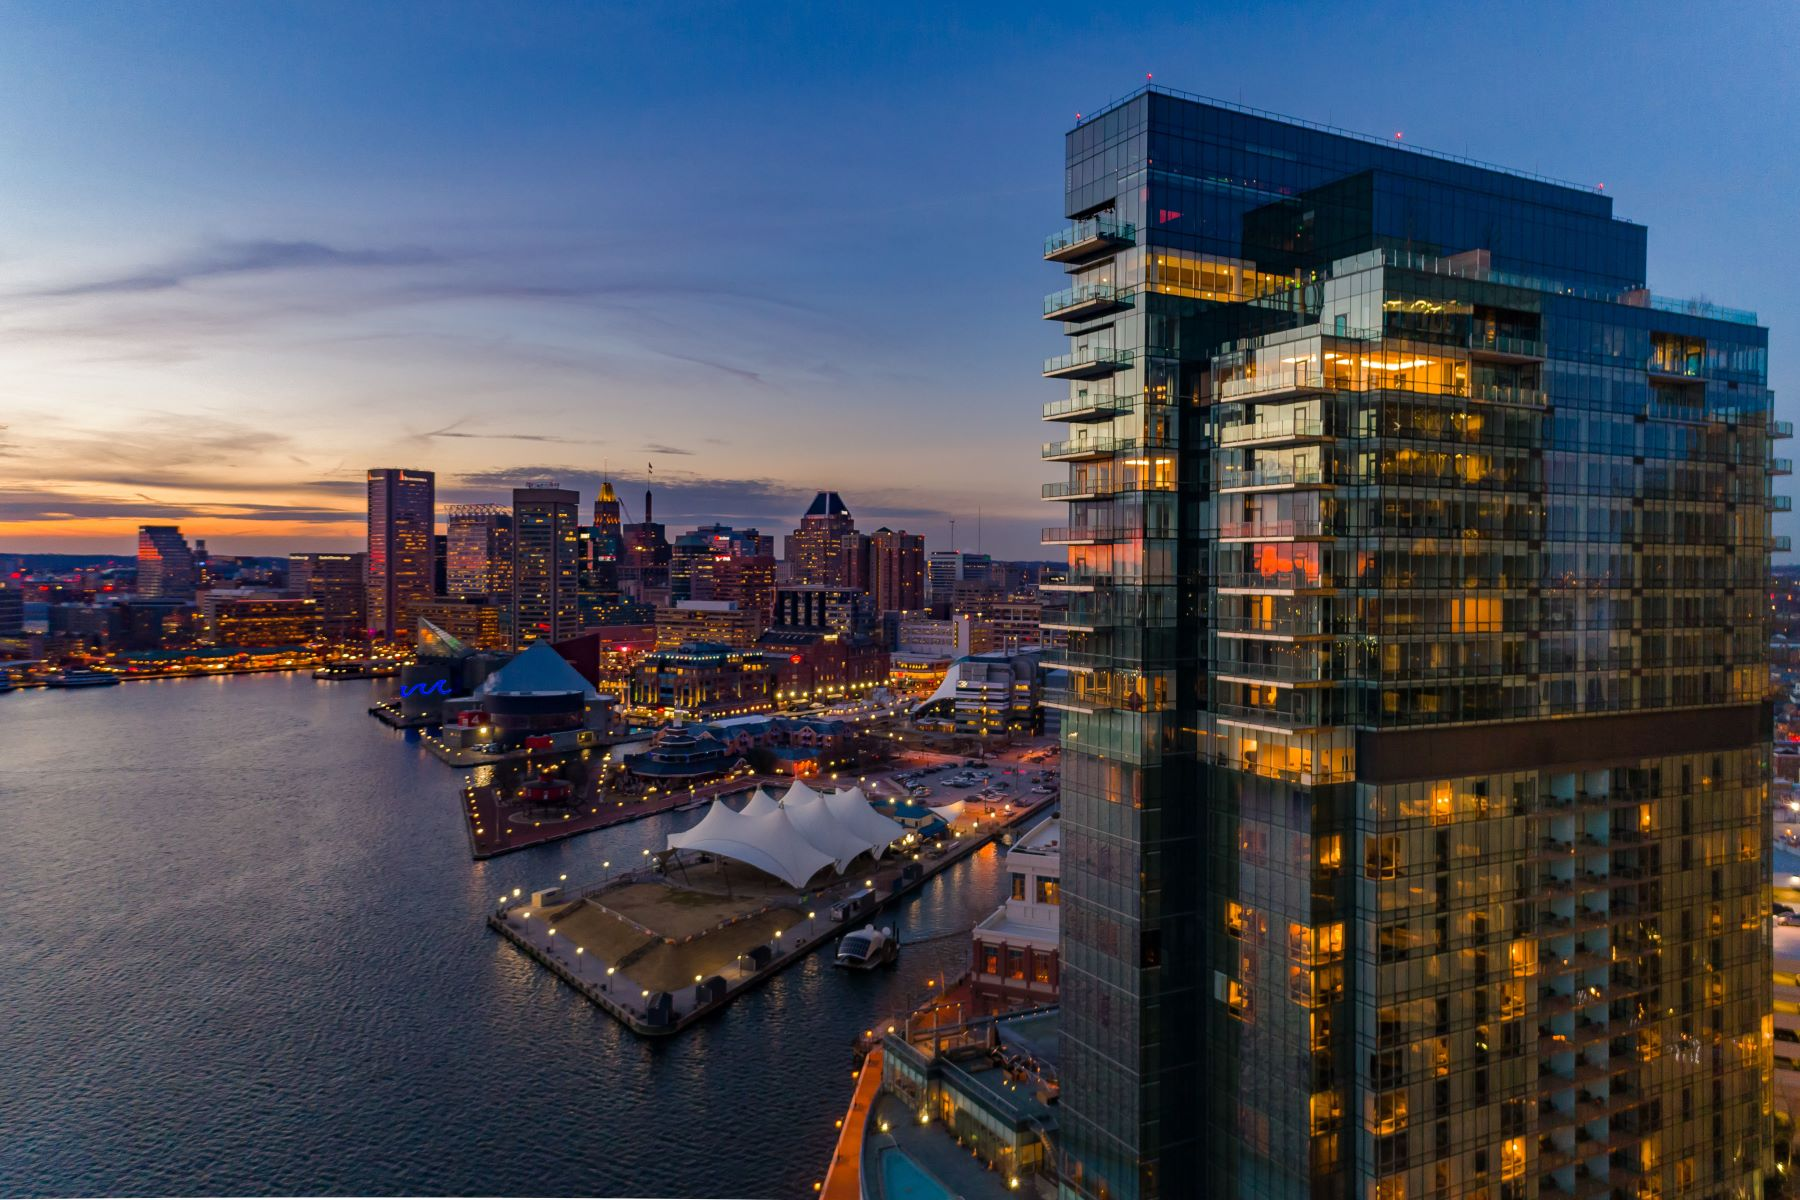 Condominiums vì Bán tại Four Seasons Private Residences 200 International Drive, #2701, Baltimore, Maryland 21202 Hoa Kỳ